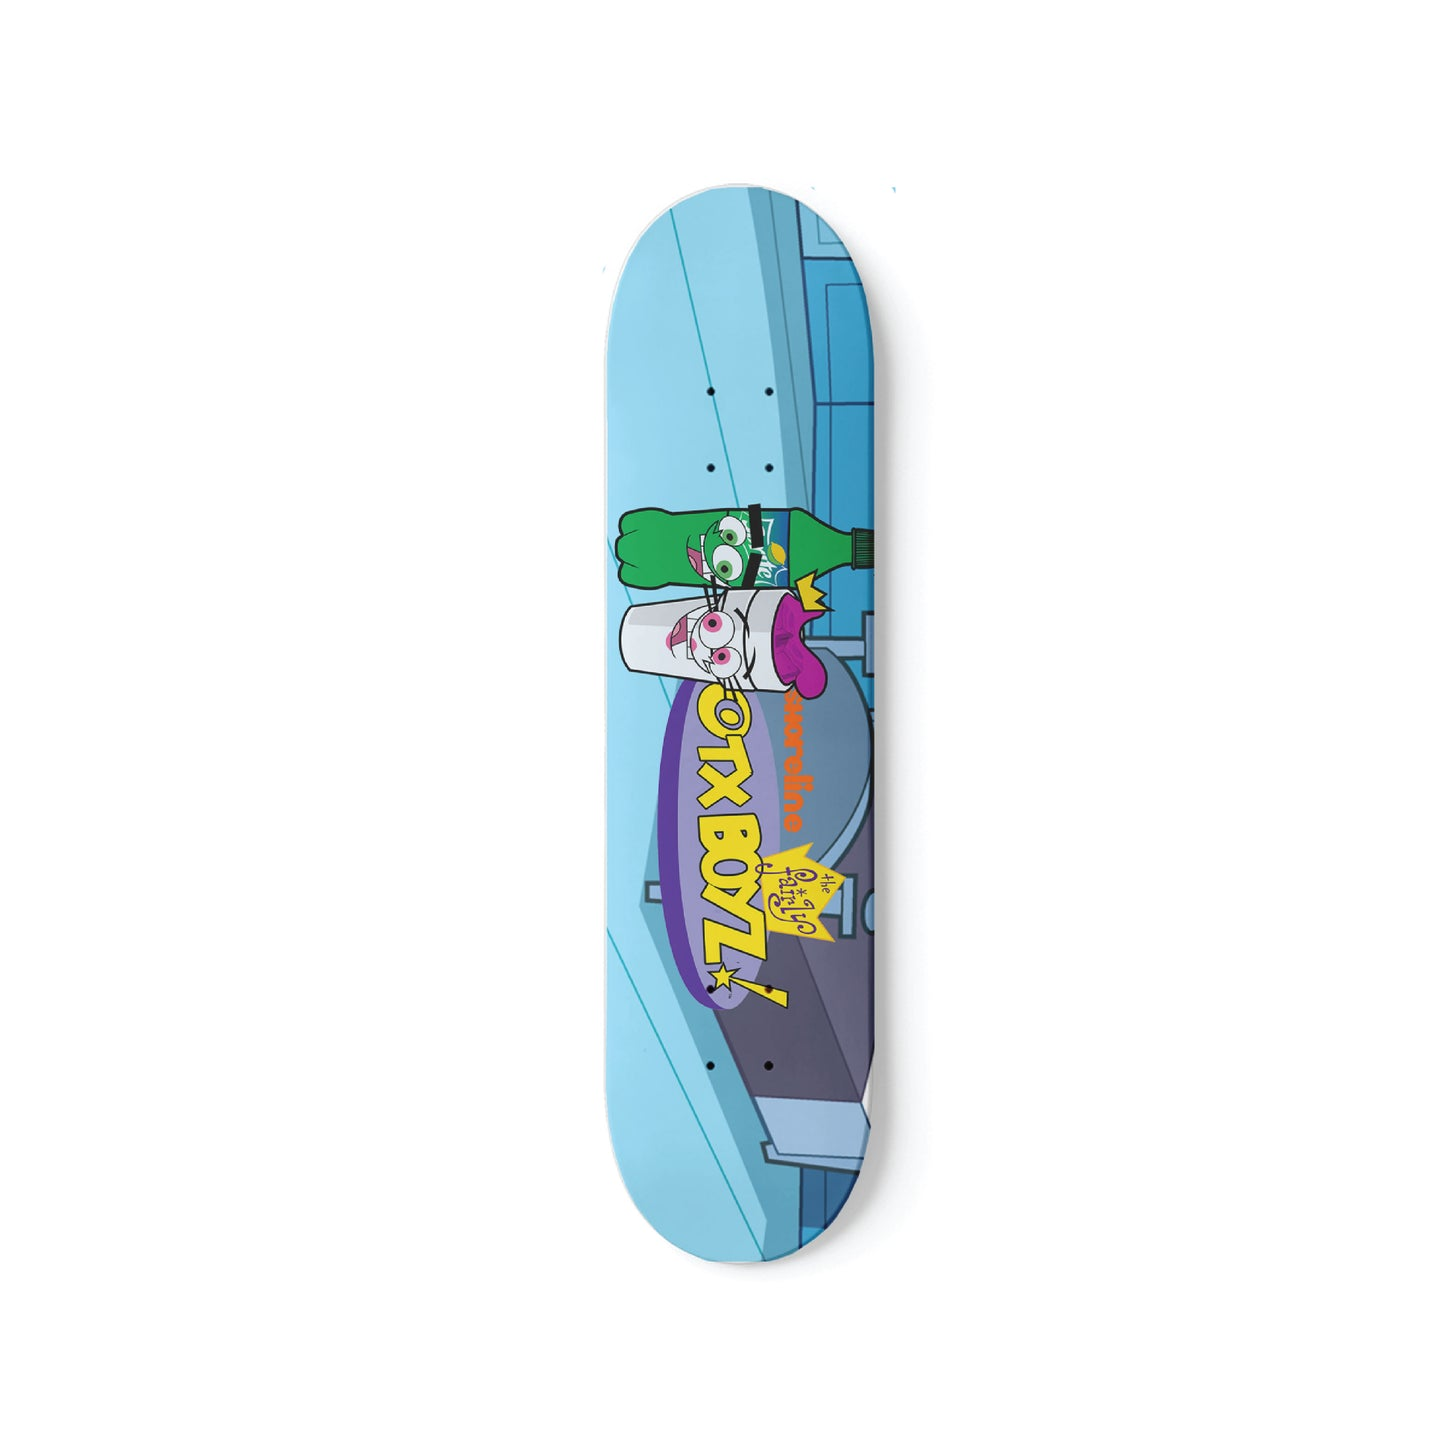 FAIRLY OTXBOYZ SKATEBOARD DECK